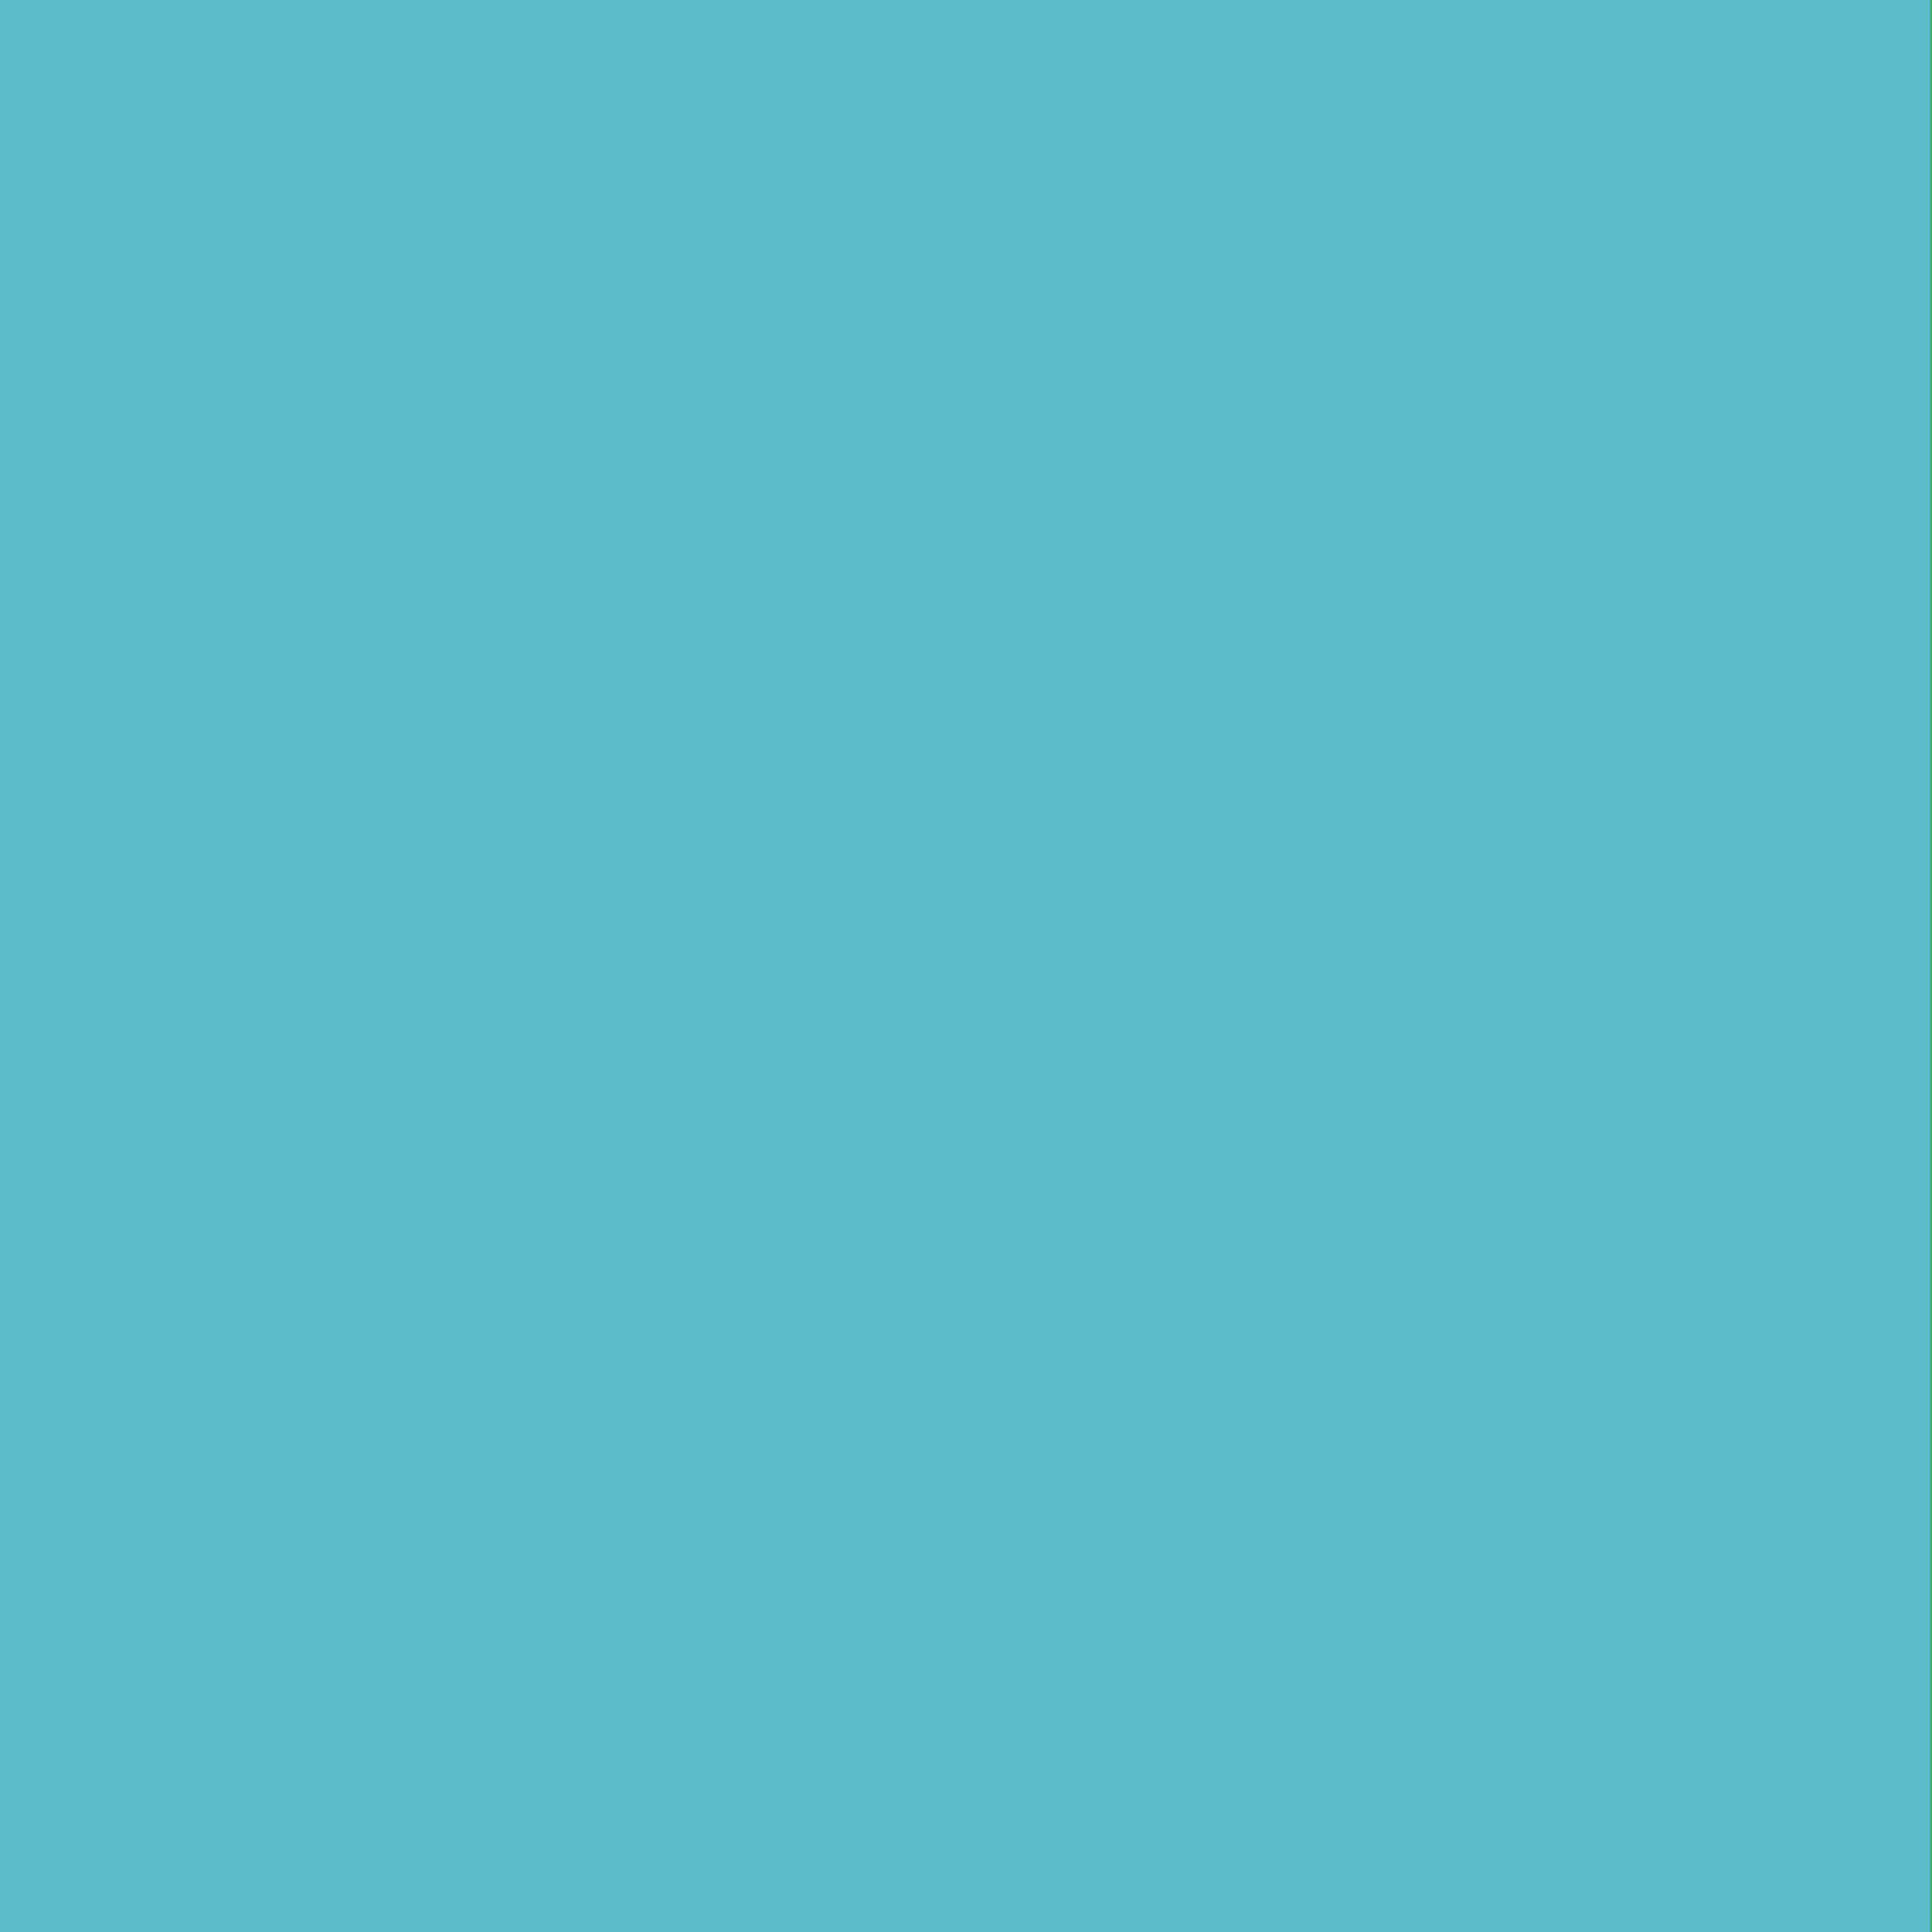 Casie Yoder Consulting Light Blue Square